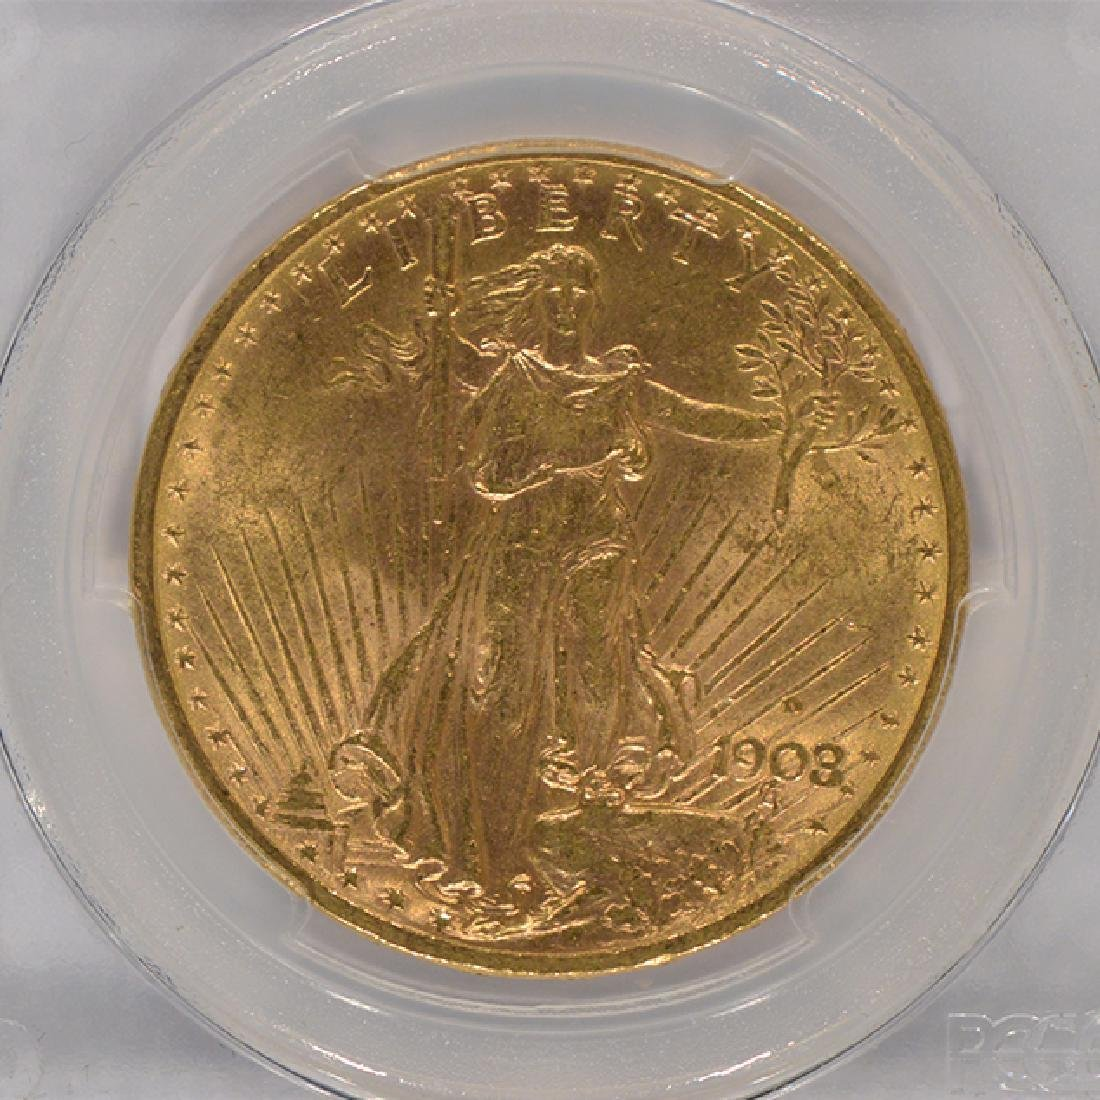 1908-D $20 St Gaudens Double Eagle Motto Gold Coin PCGS - 3